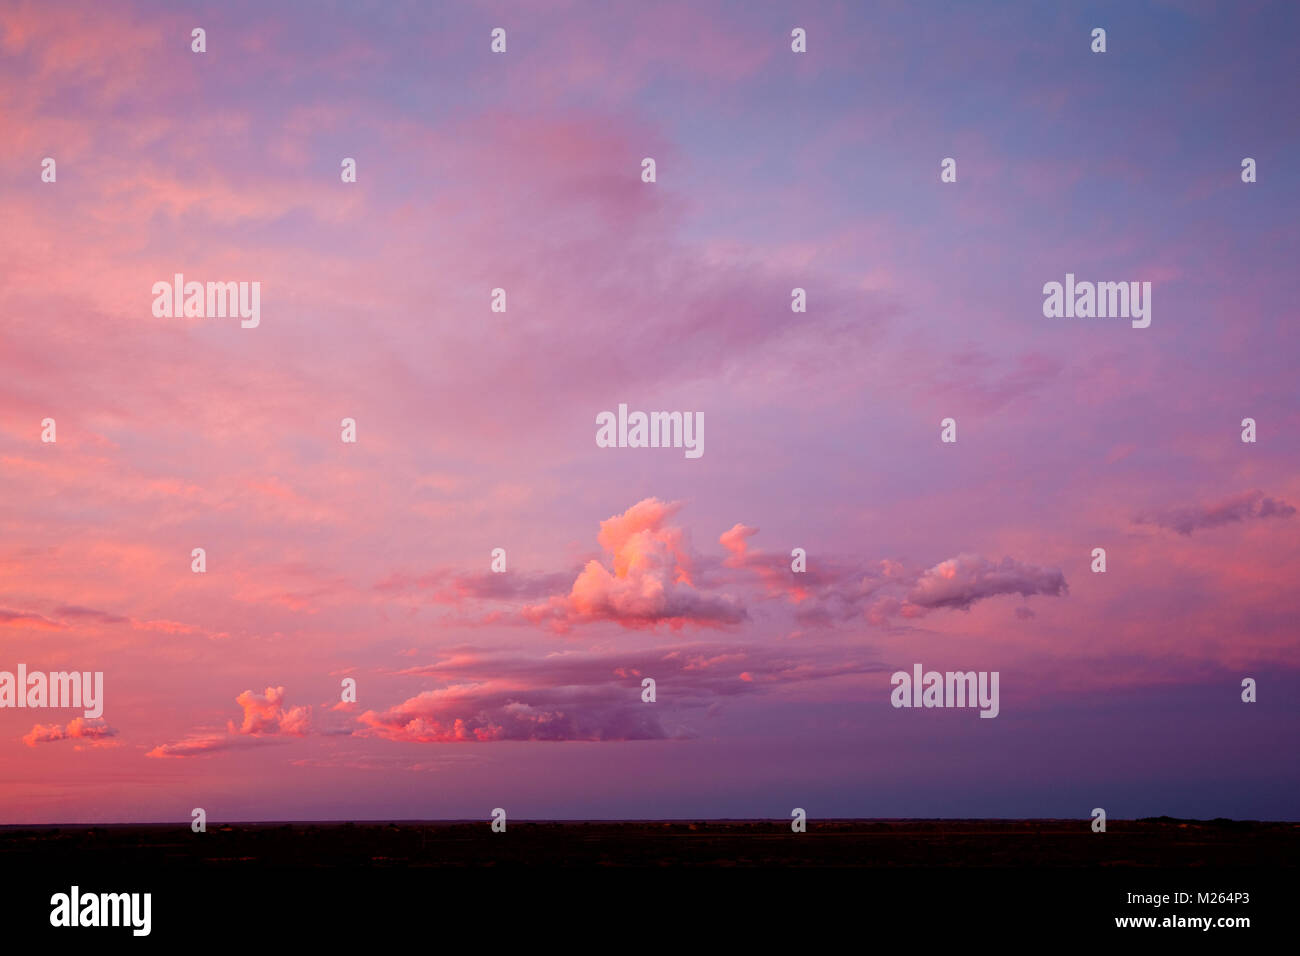 Pink sunset over plain country, near Menindee, NSW, an area part of the Murray Darling Basin, Australia. - Stock Image